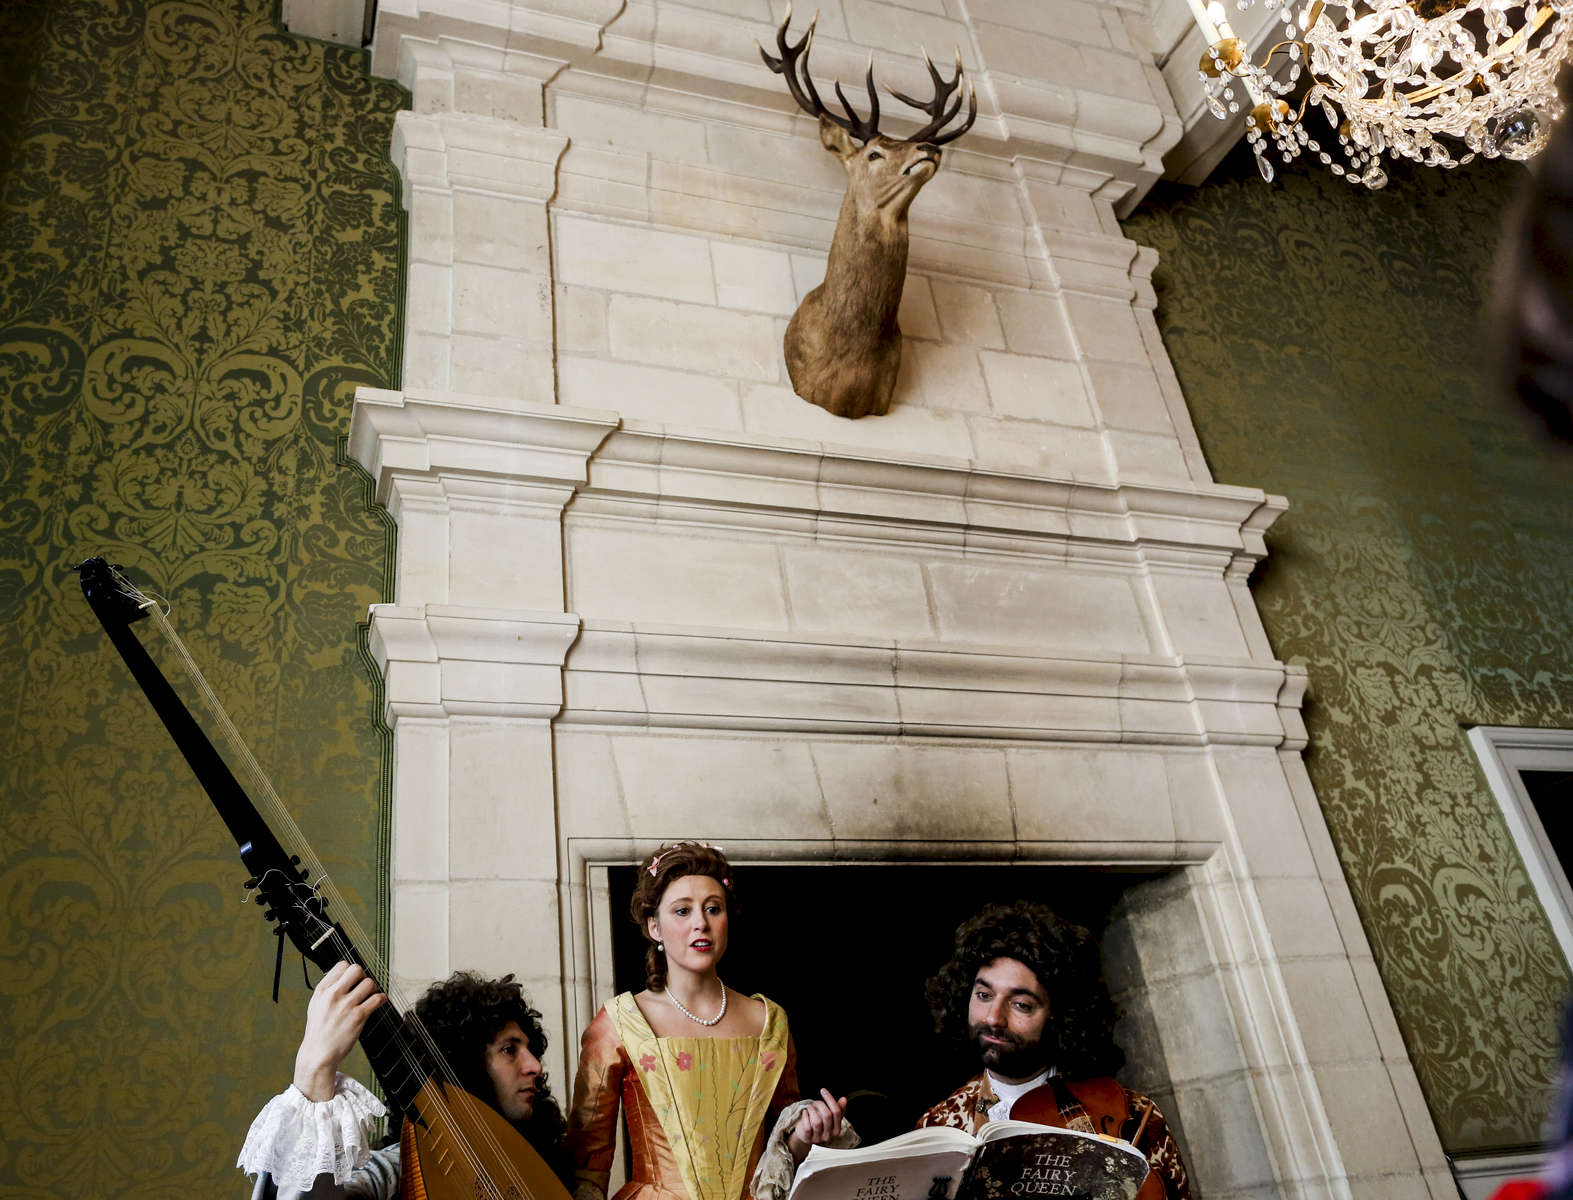 Romain Falik, Léna Rondé and Camille Ranciere play a music to the castle's visitors between two performances.